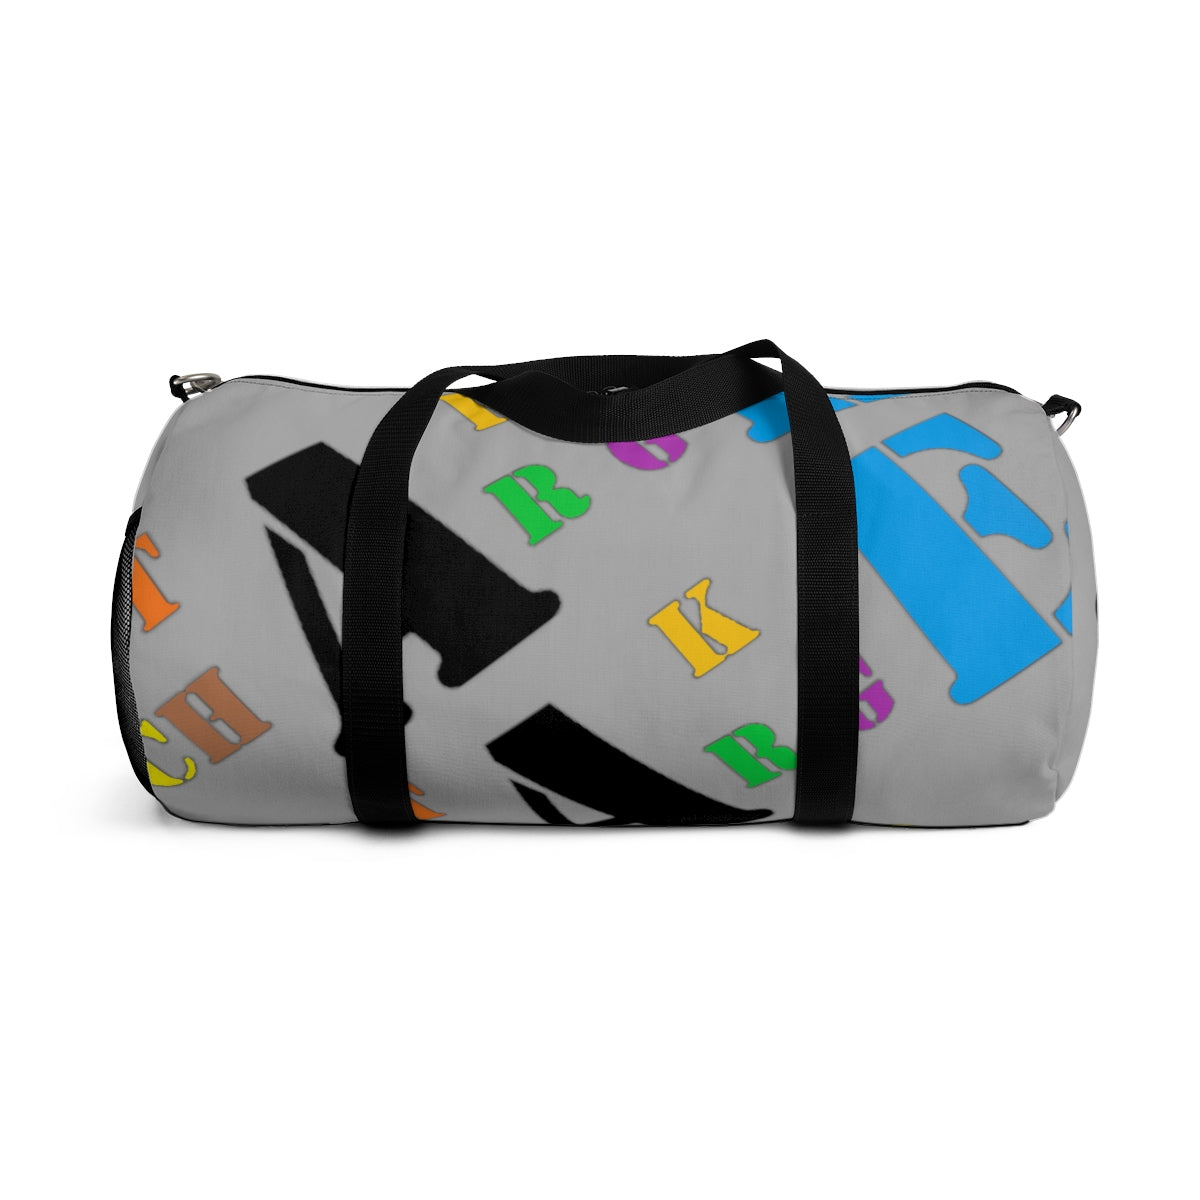 Take Charge Duffel Bag